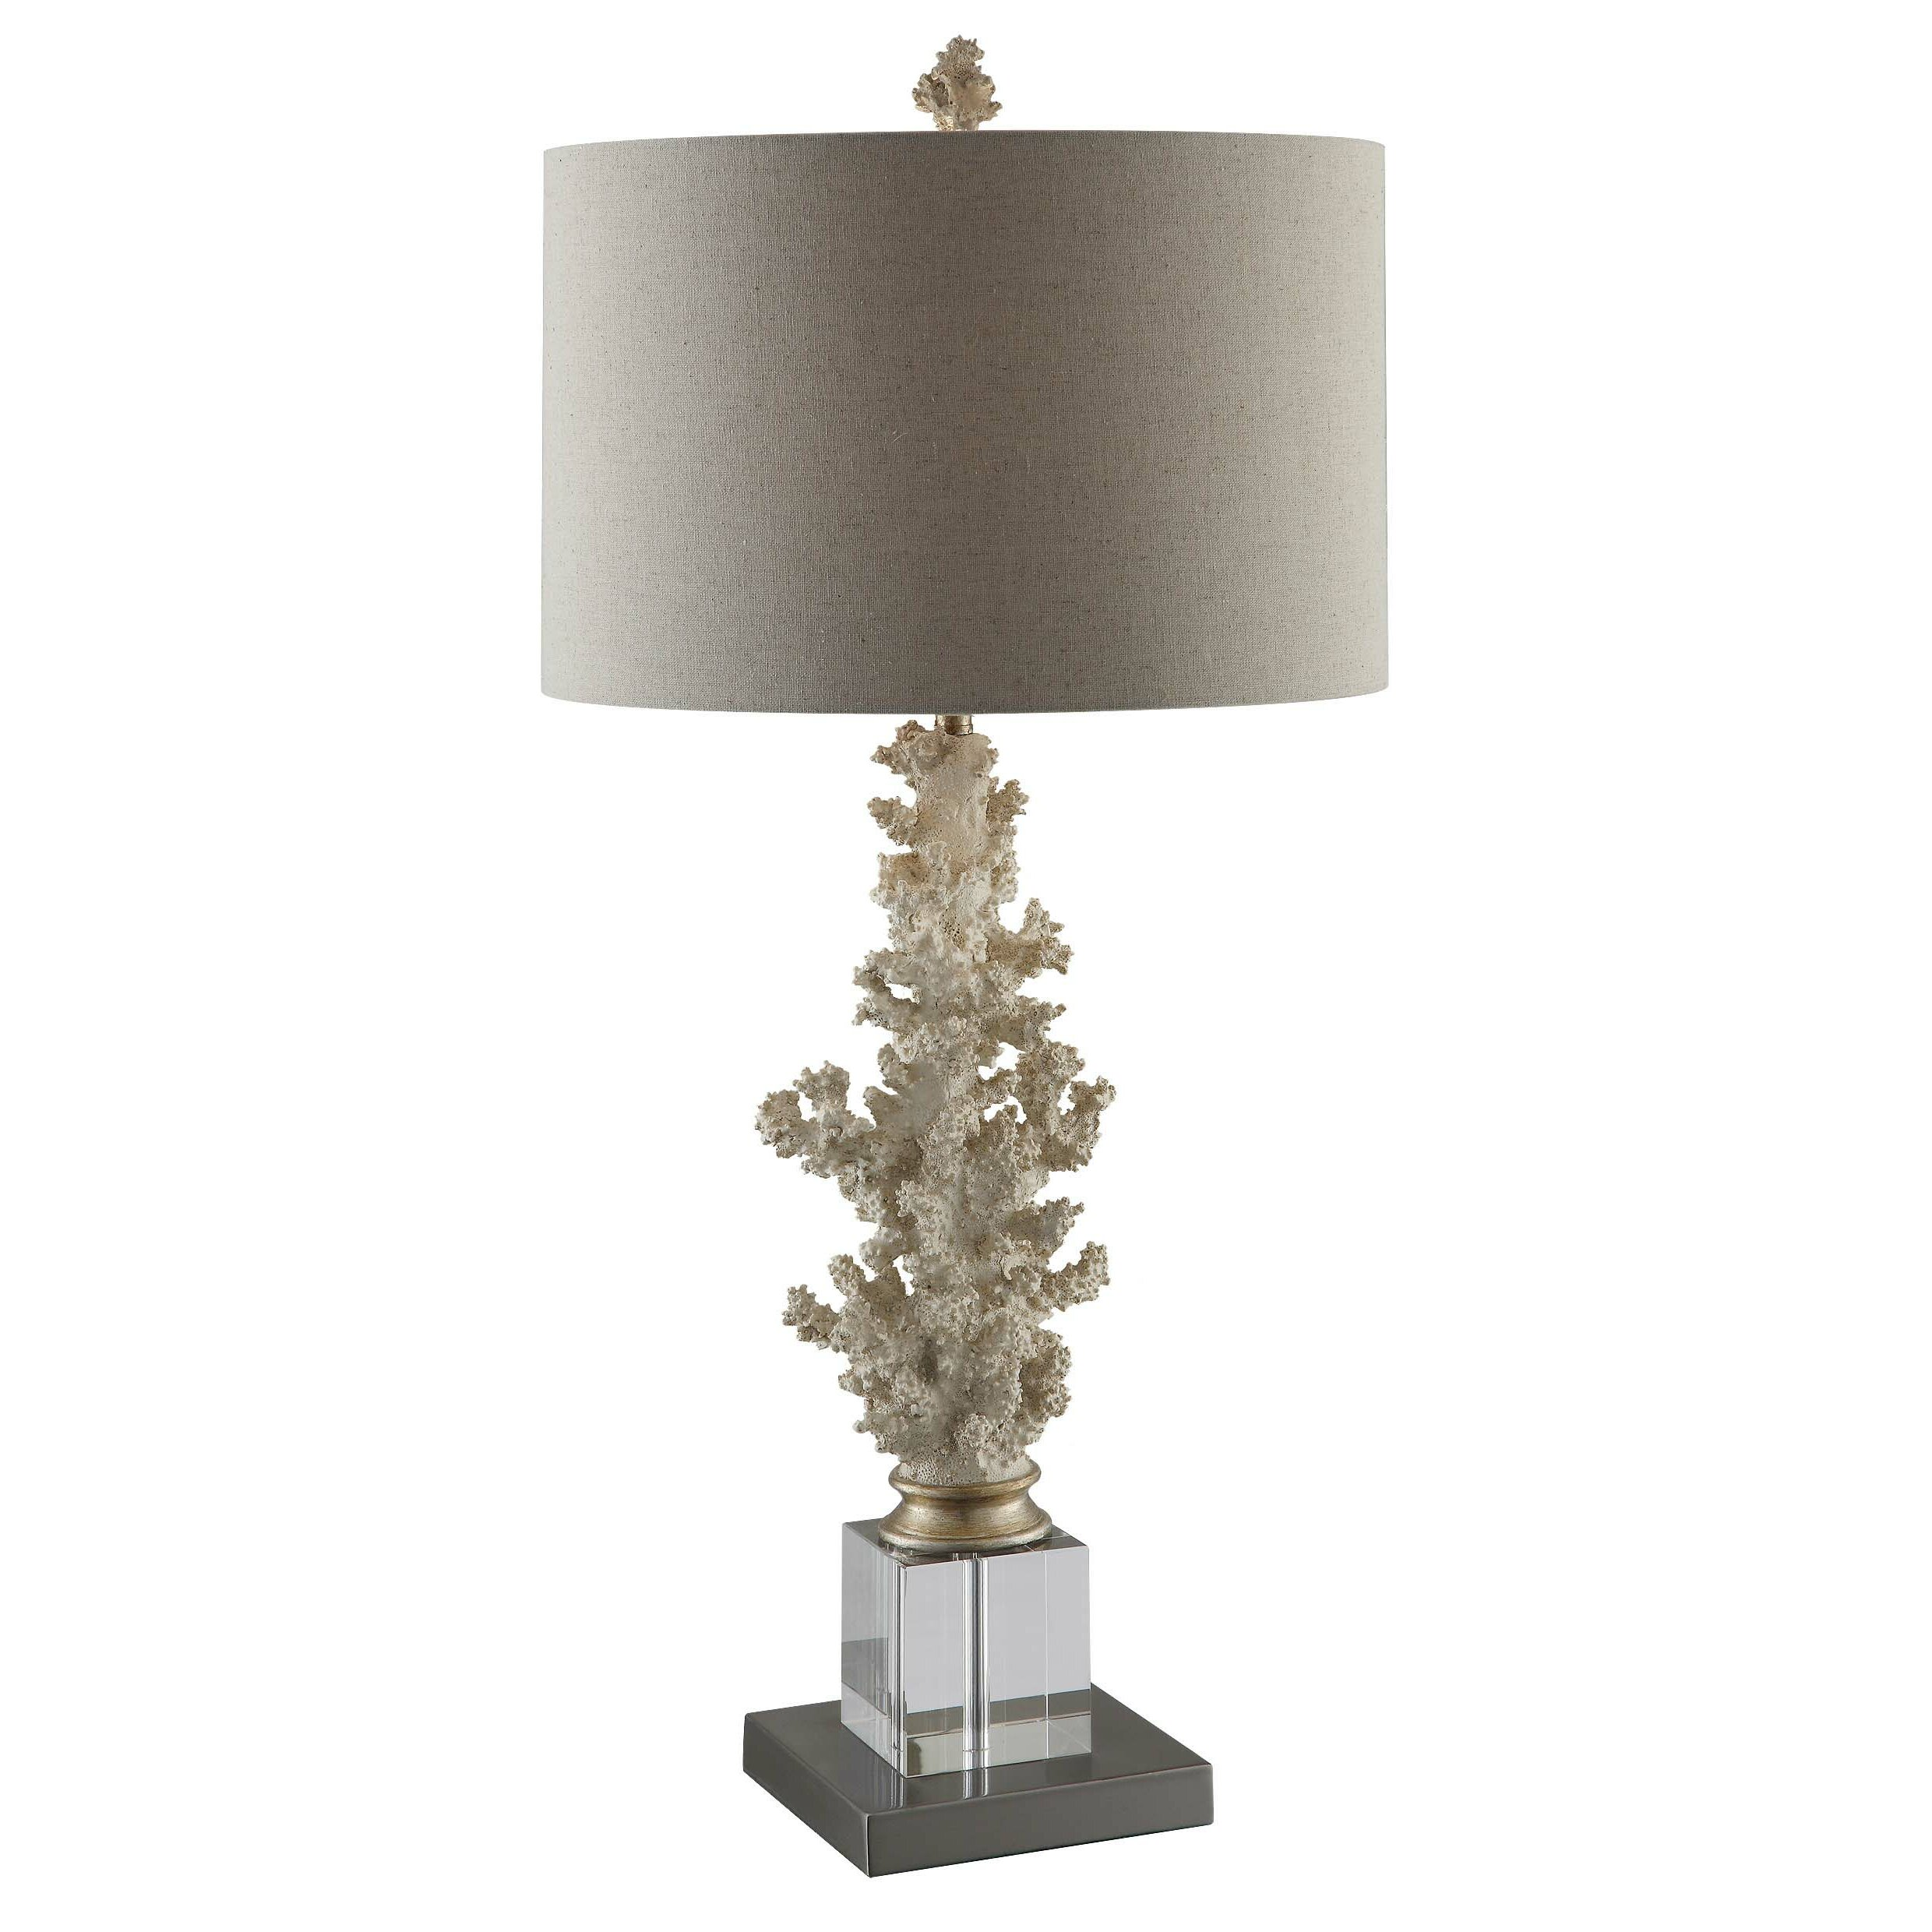 Crestview Sea Side Coral Gables 31 5 Quot H Table Lamp With